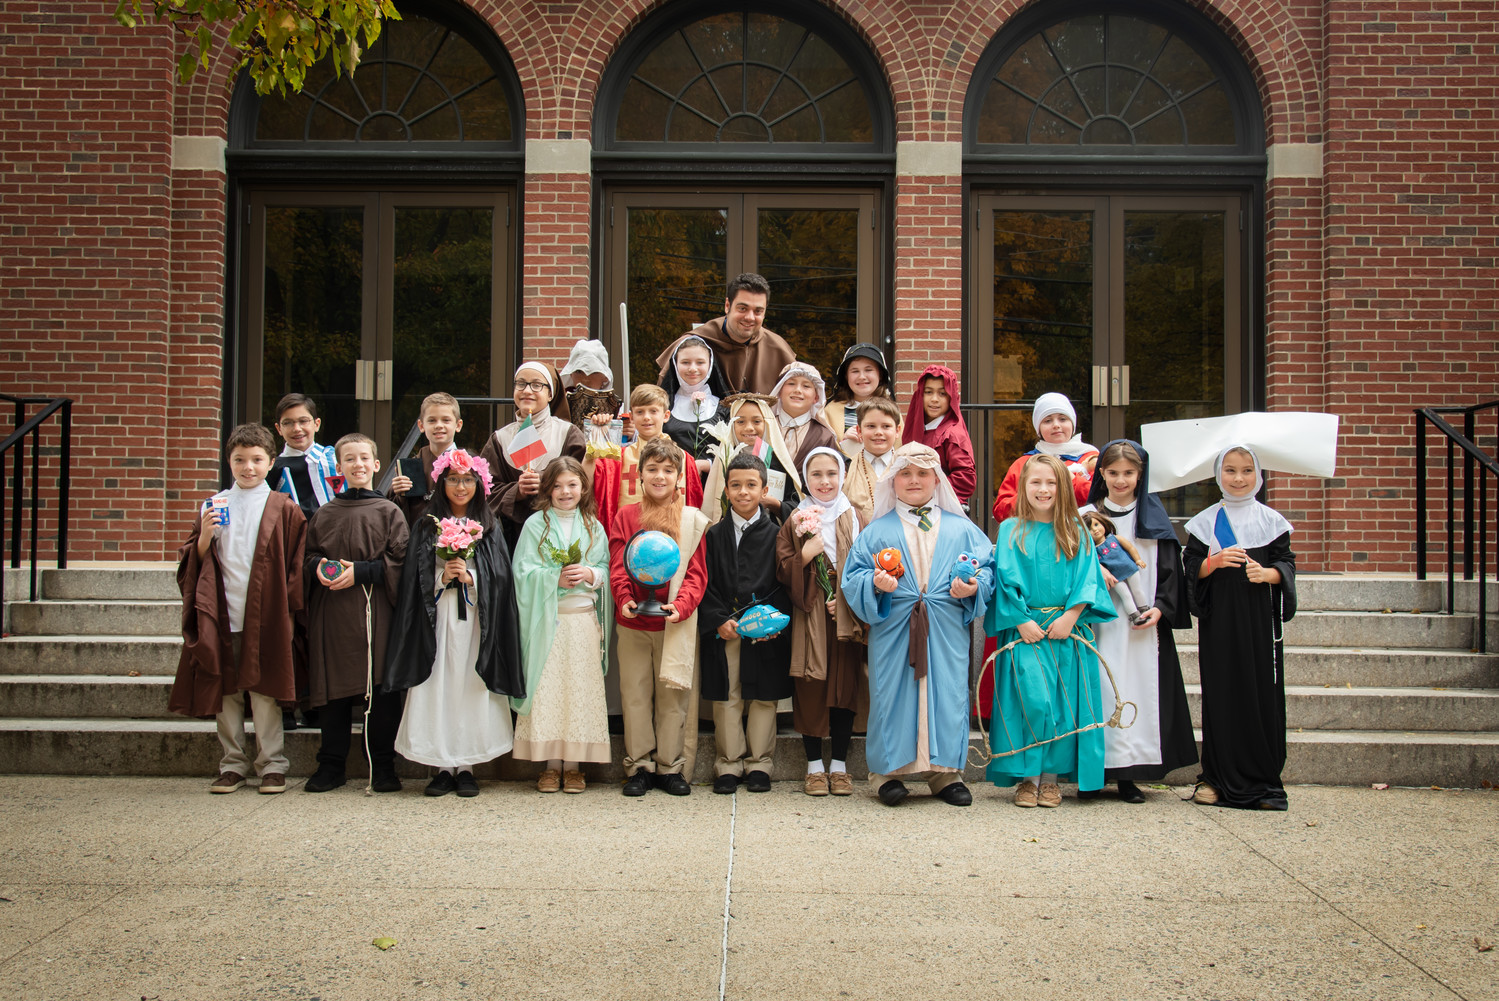 Ralph Cola's fourth grade class at St. Augustine School recently chose a saint to learn about, and on Thursday, Nov. 1, toured the school in costumes representing their saint and sharing facts and special details.